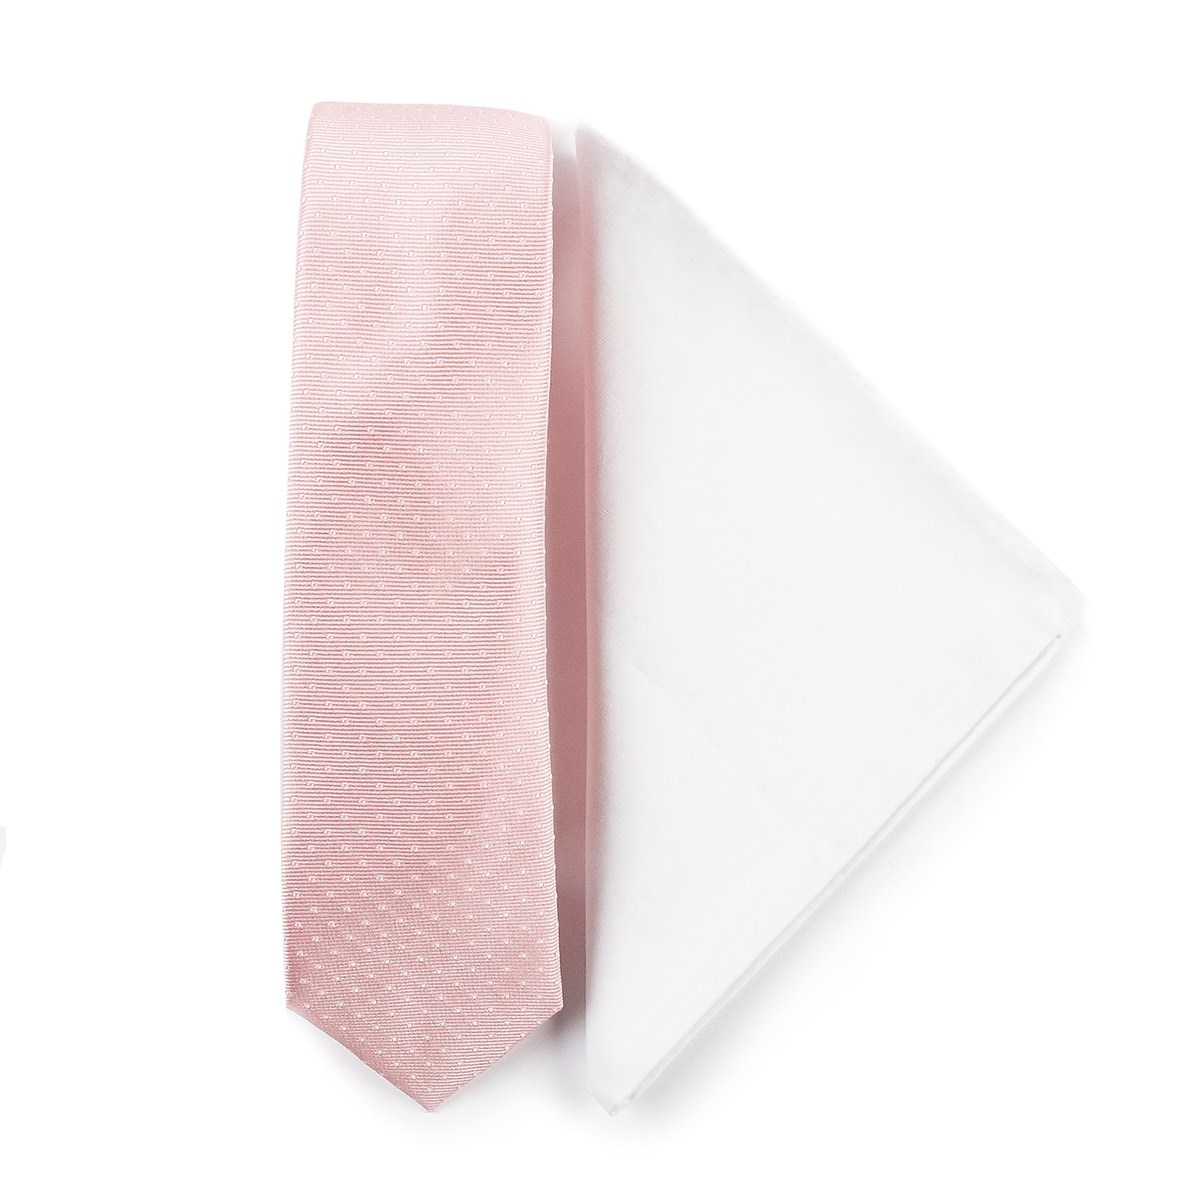 blush pink tie photo - 1